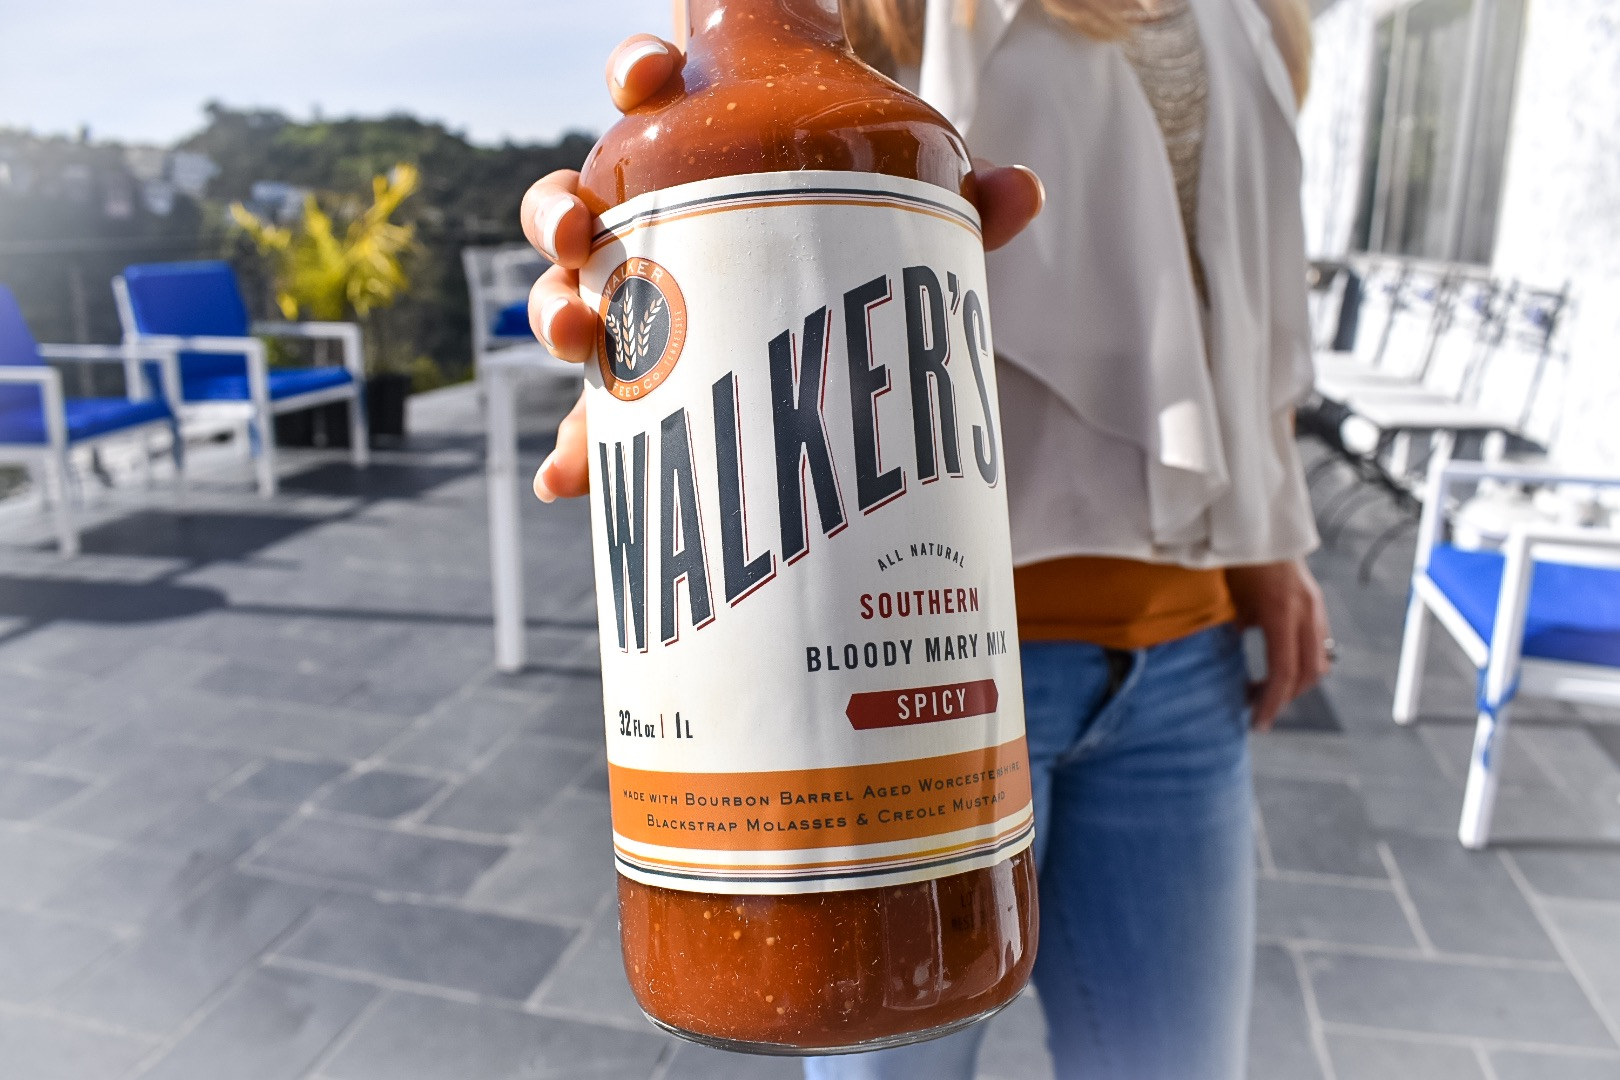 walker feed co bloody mary obsessed michelada recipe 1.jpg